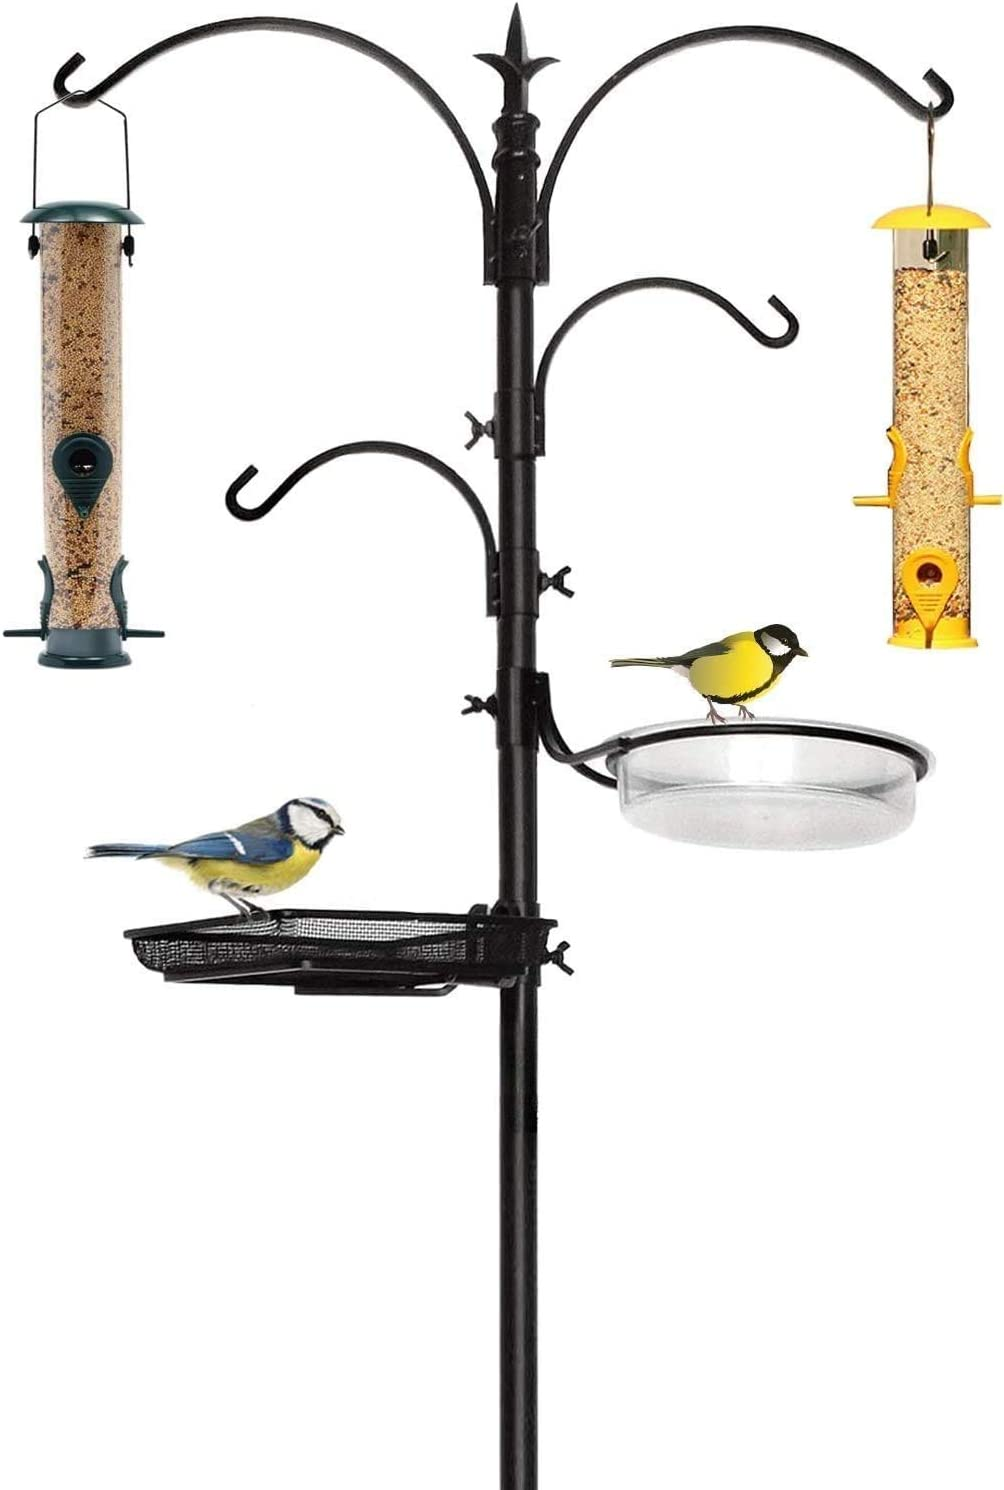 Premium Bird Feeding Station with Feeders Included 2 Challenge the lowest price of Japan ☆ Ou for Don't miss the campaign